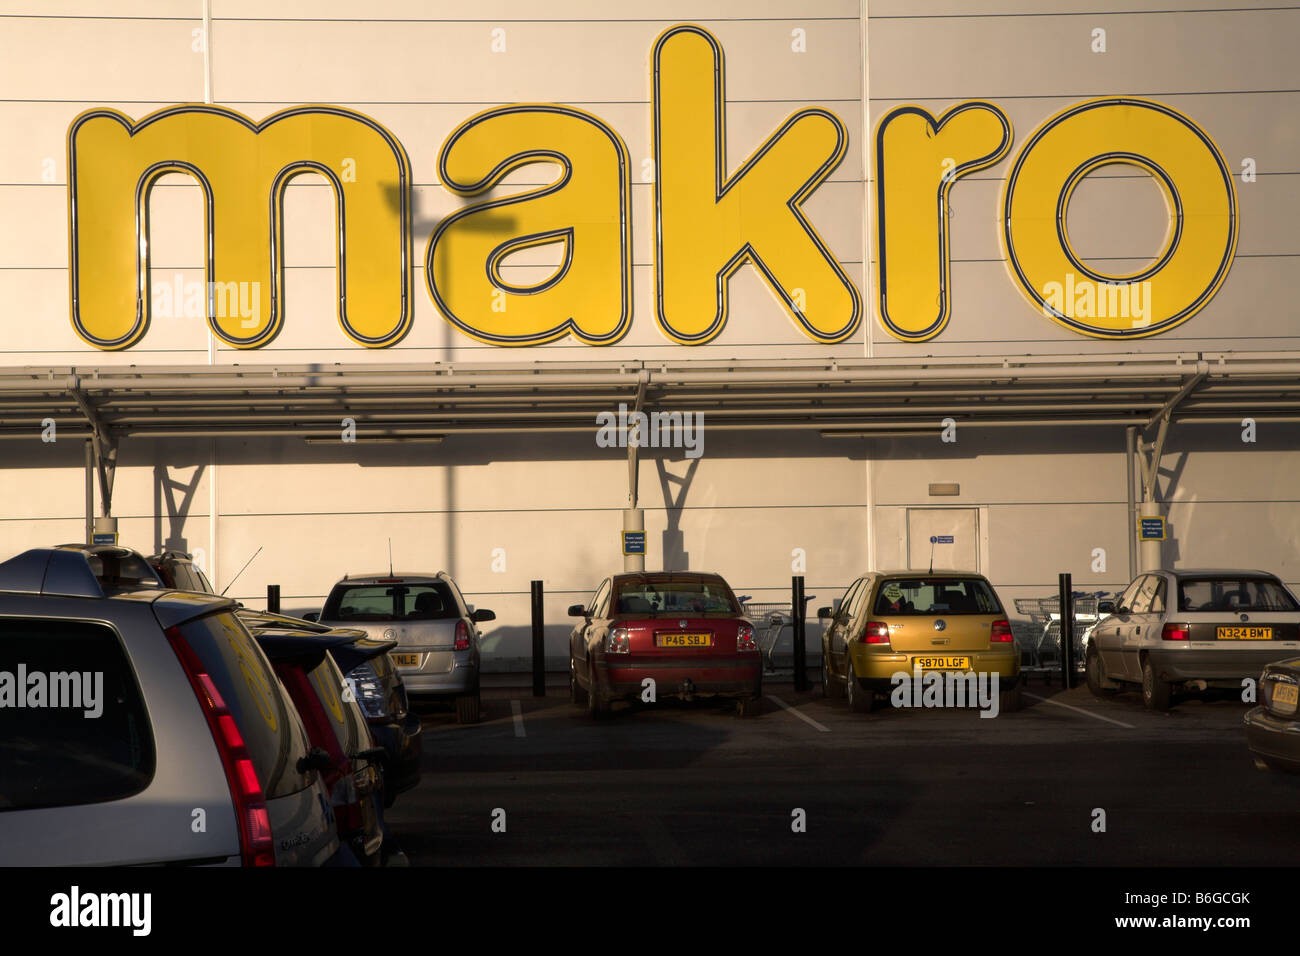 Makro shop building and car park Ipswich Suffolk England - Stock Image